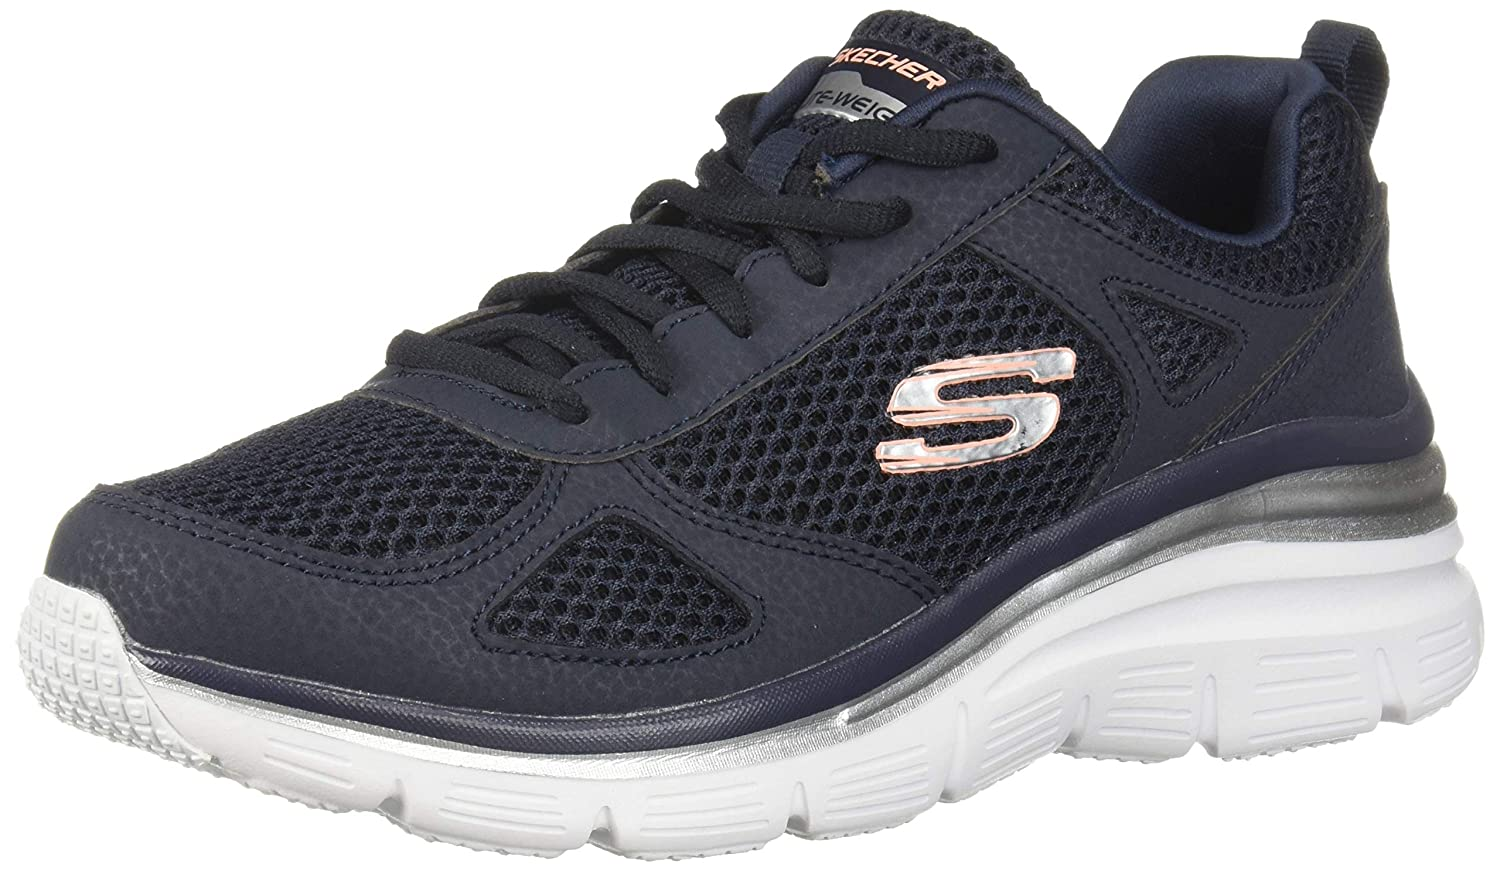 Nvy Skechers Women's Fashion FIT-Perfect Mate